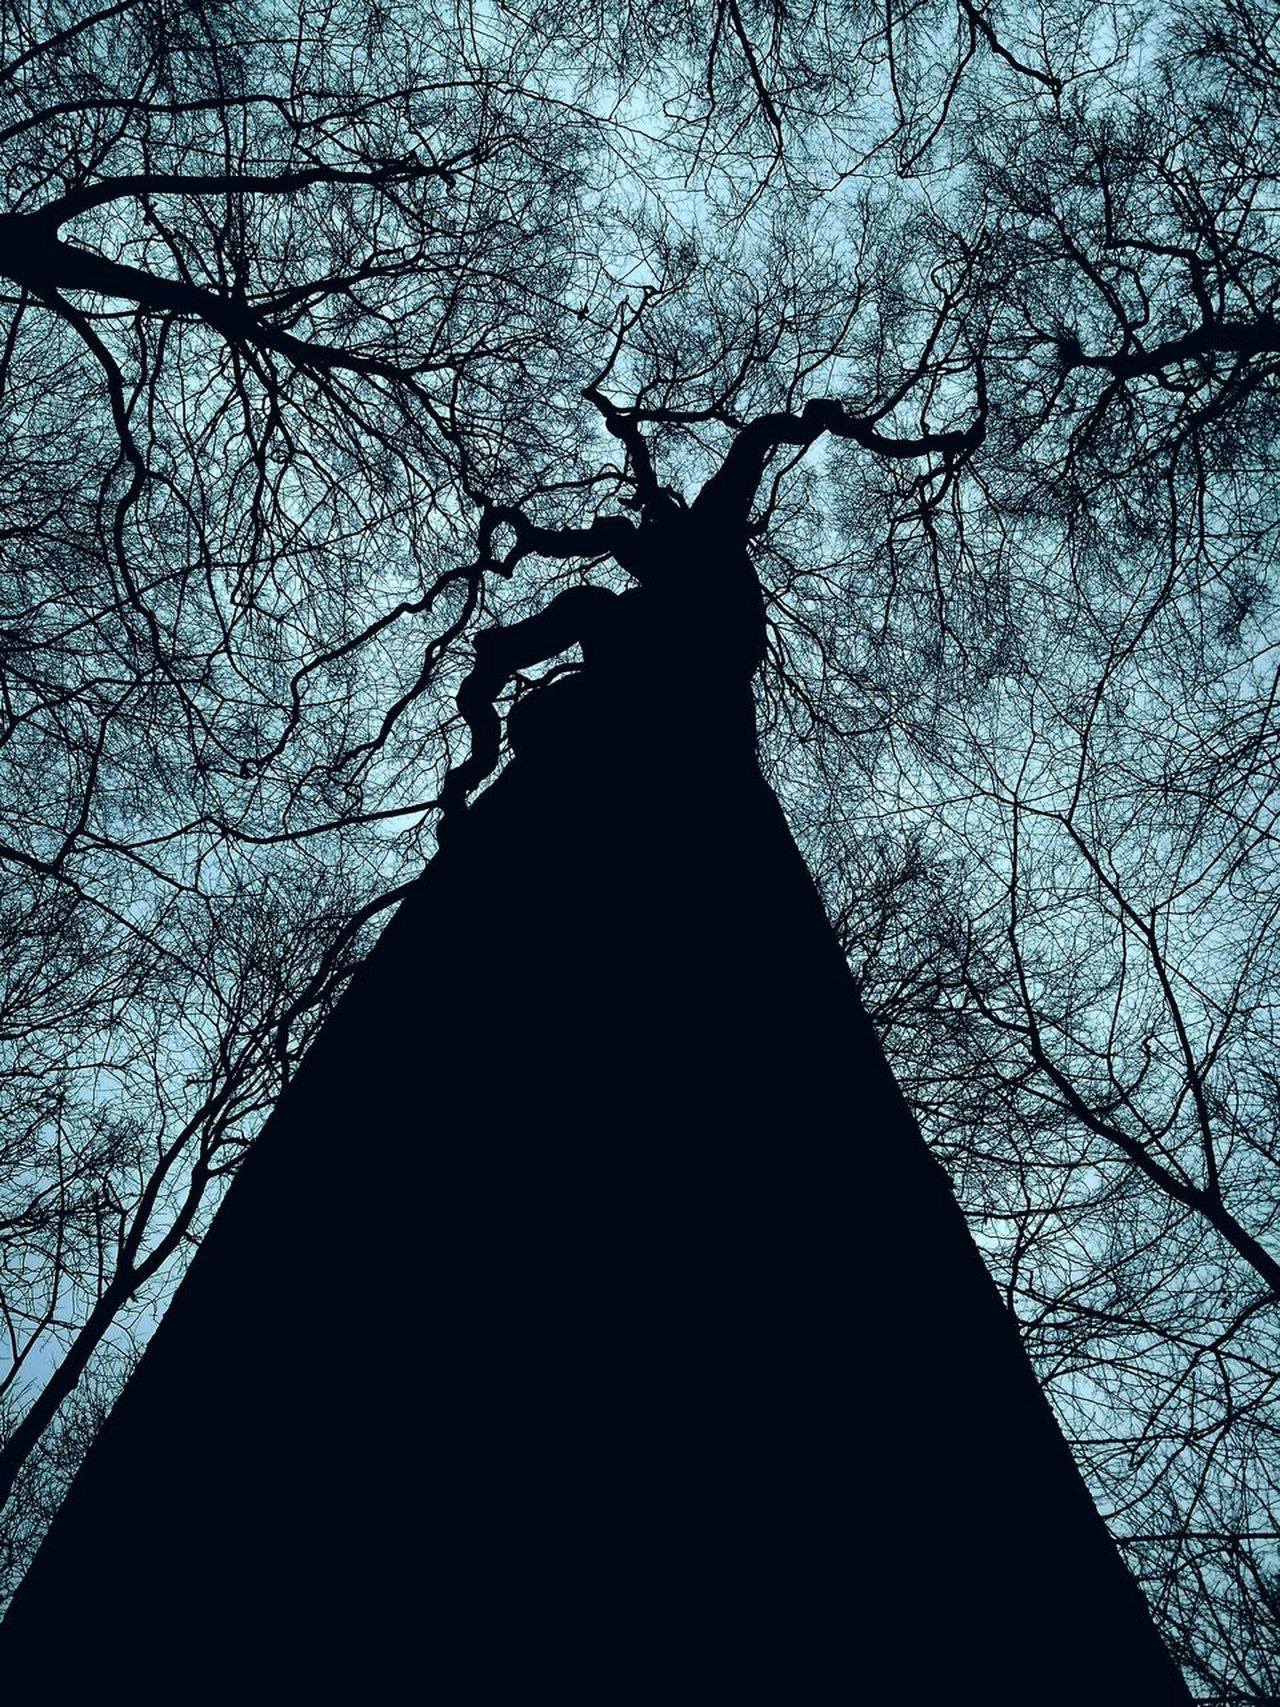 Welcome To Black Tree Silhouette Low Angle View No People Nature Outdoors Reedited